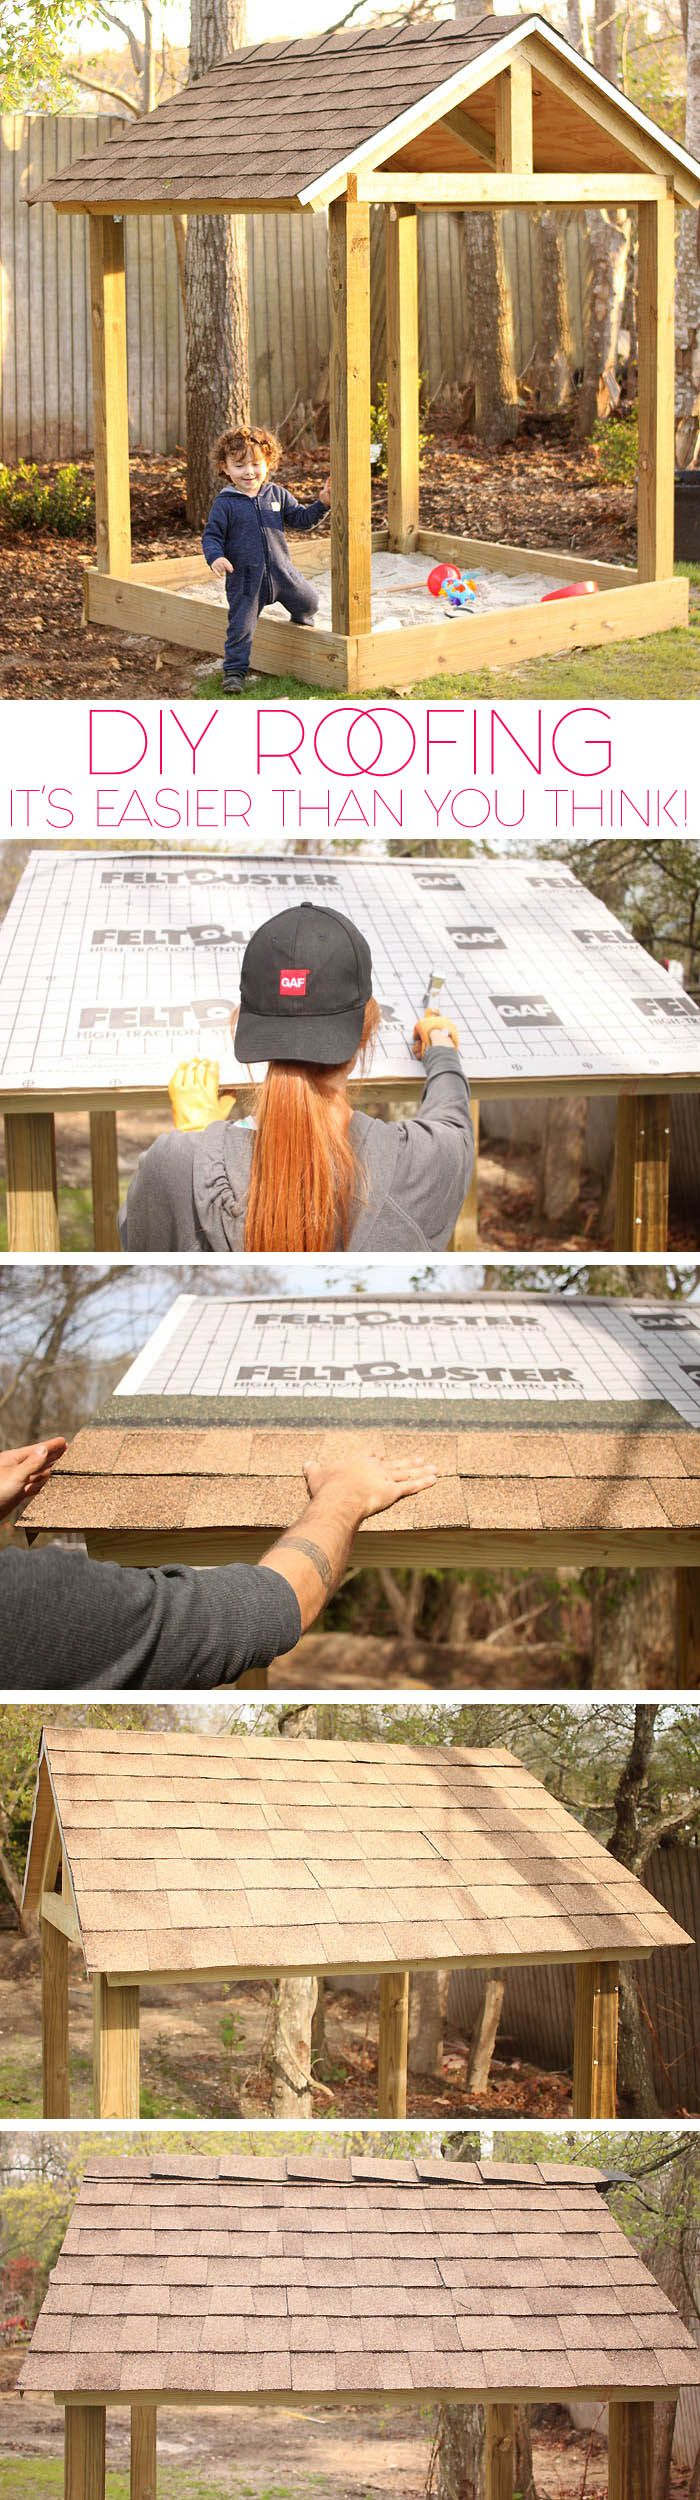 Learn how to do DIY Roofing on a small structure with Timberline® shingles! #RoofedItMyself #ad